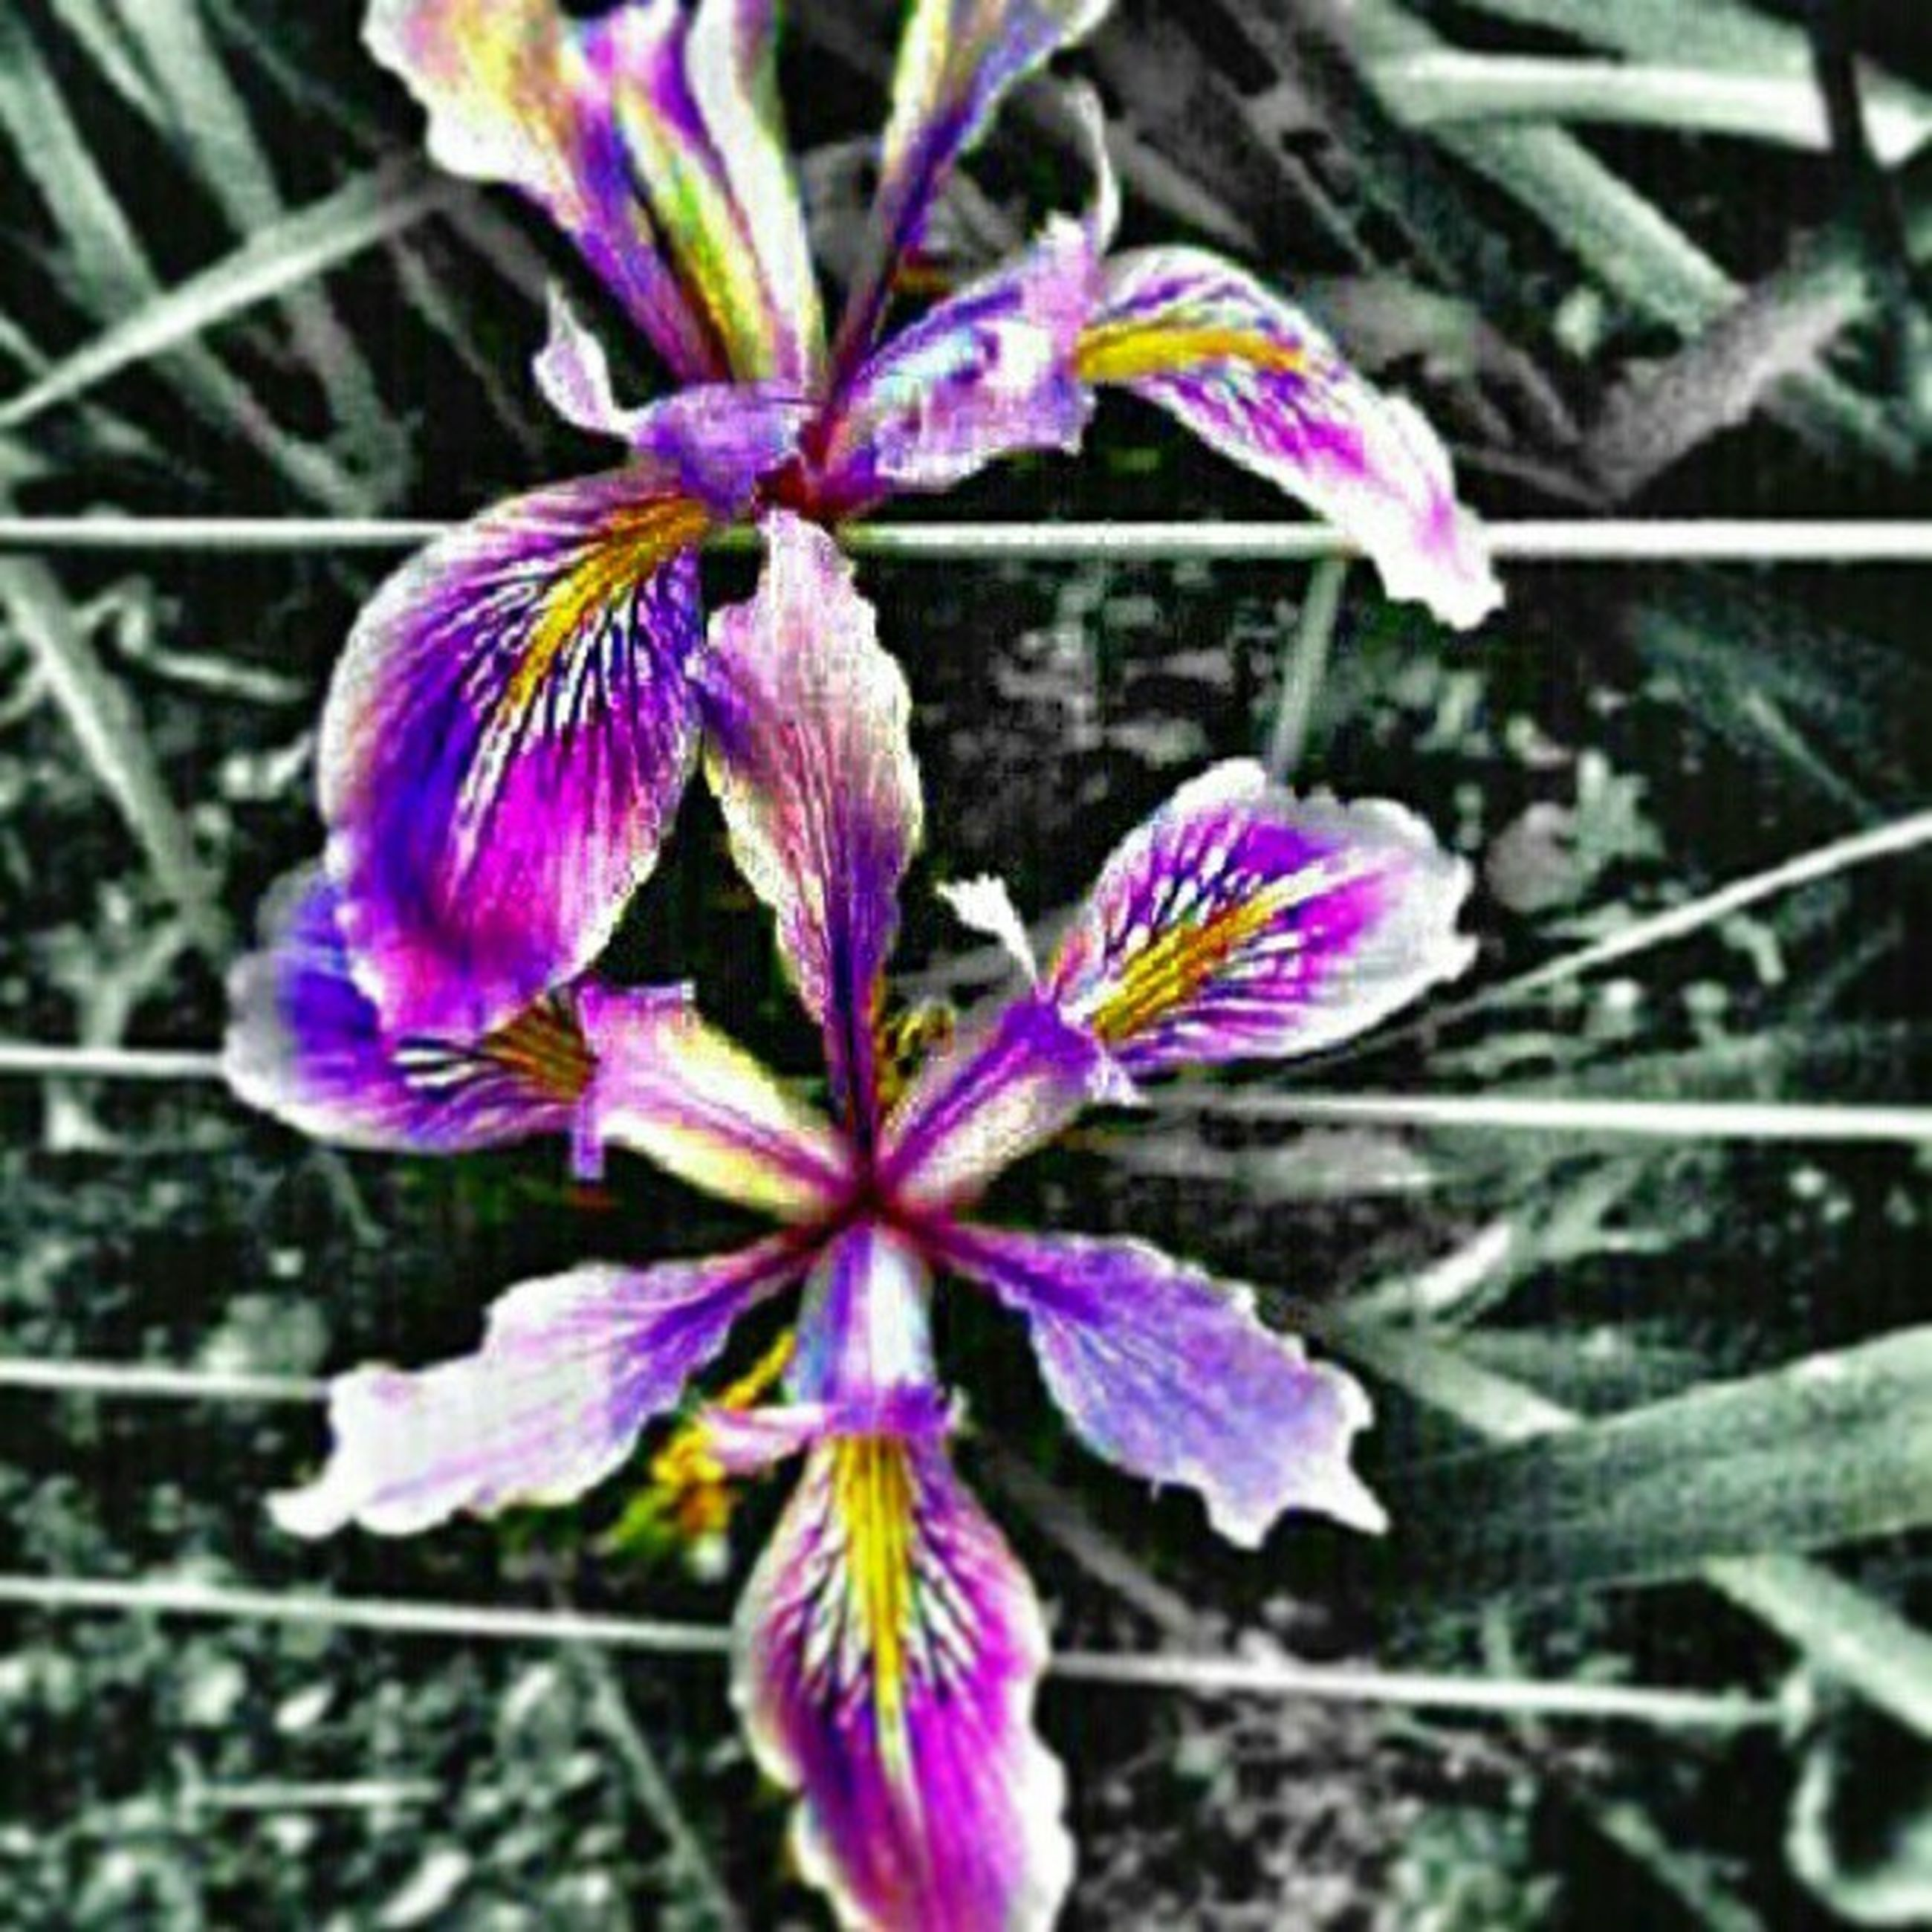 flower, freshness, fragility, growth, close-up, purple, petal, focus on foreground, flower head, nature, beauty in nature, plant, blooming, stem, in bloom, day, botany, outdoors, blossom, no people